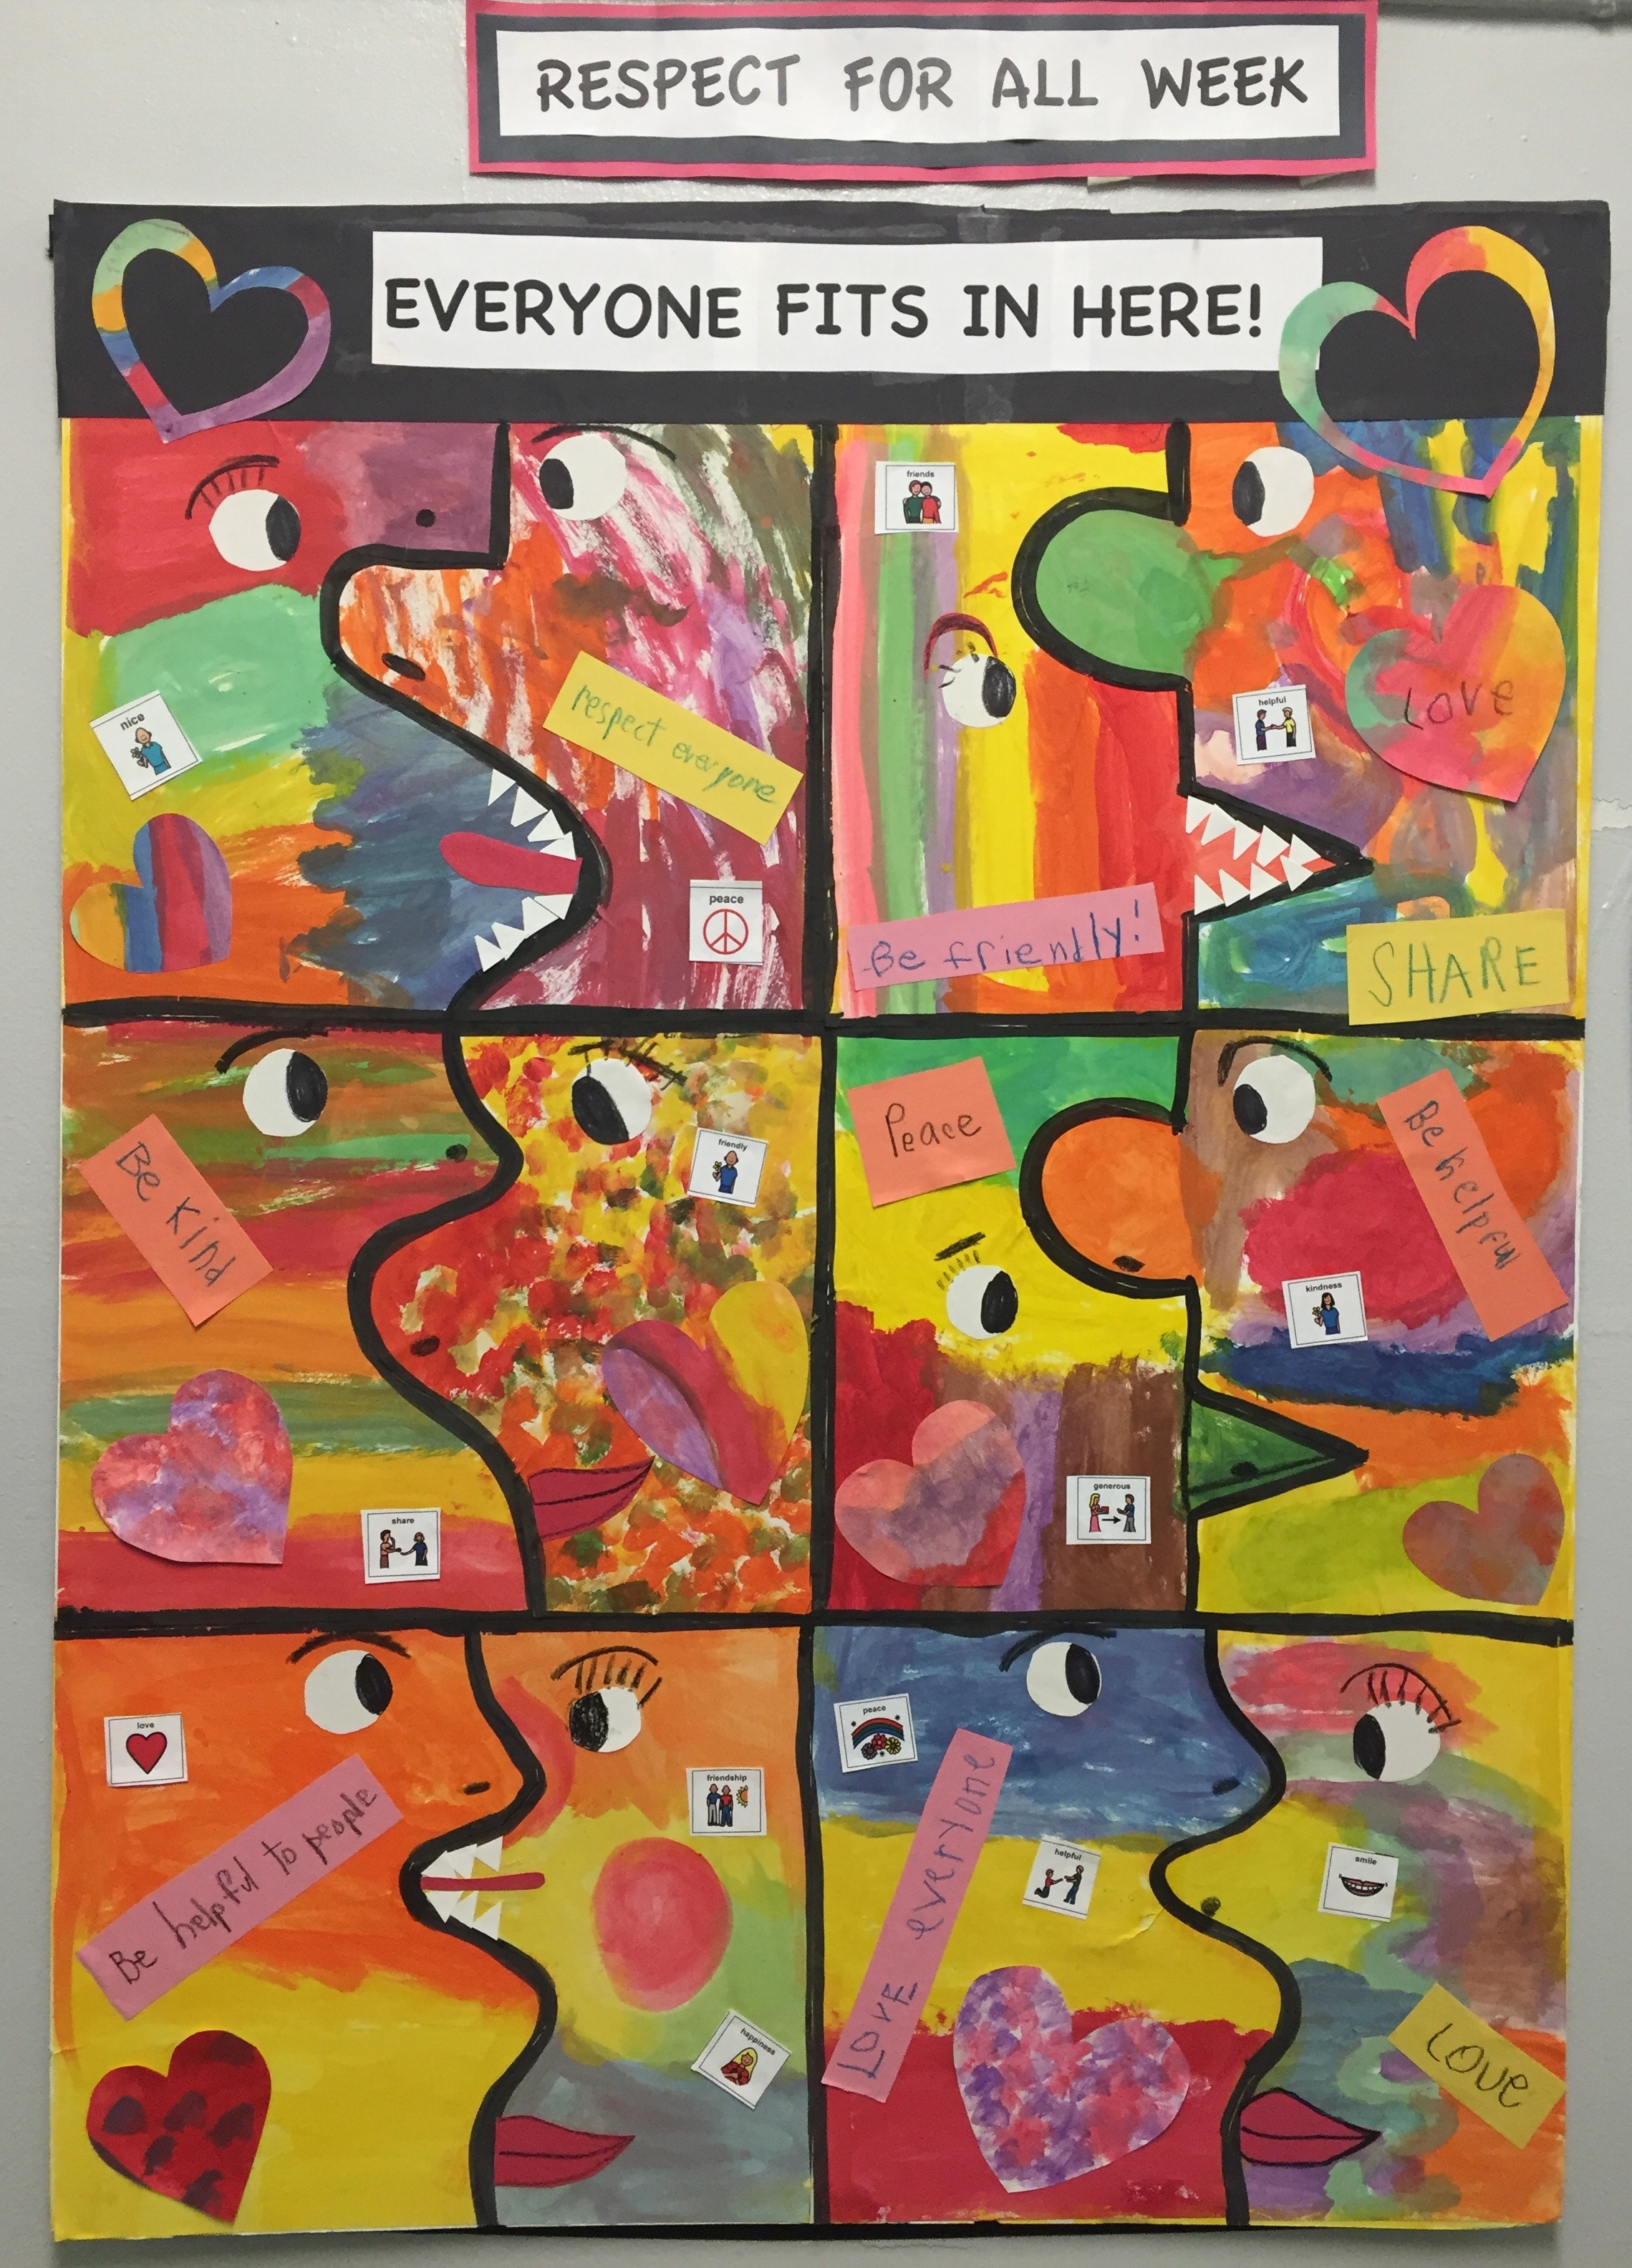 Puzzle pieces with kindness messages are put together to make one large puzzle of unity.